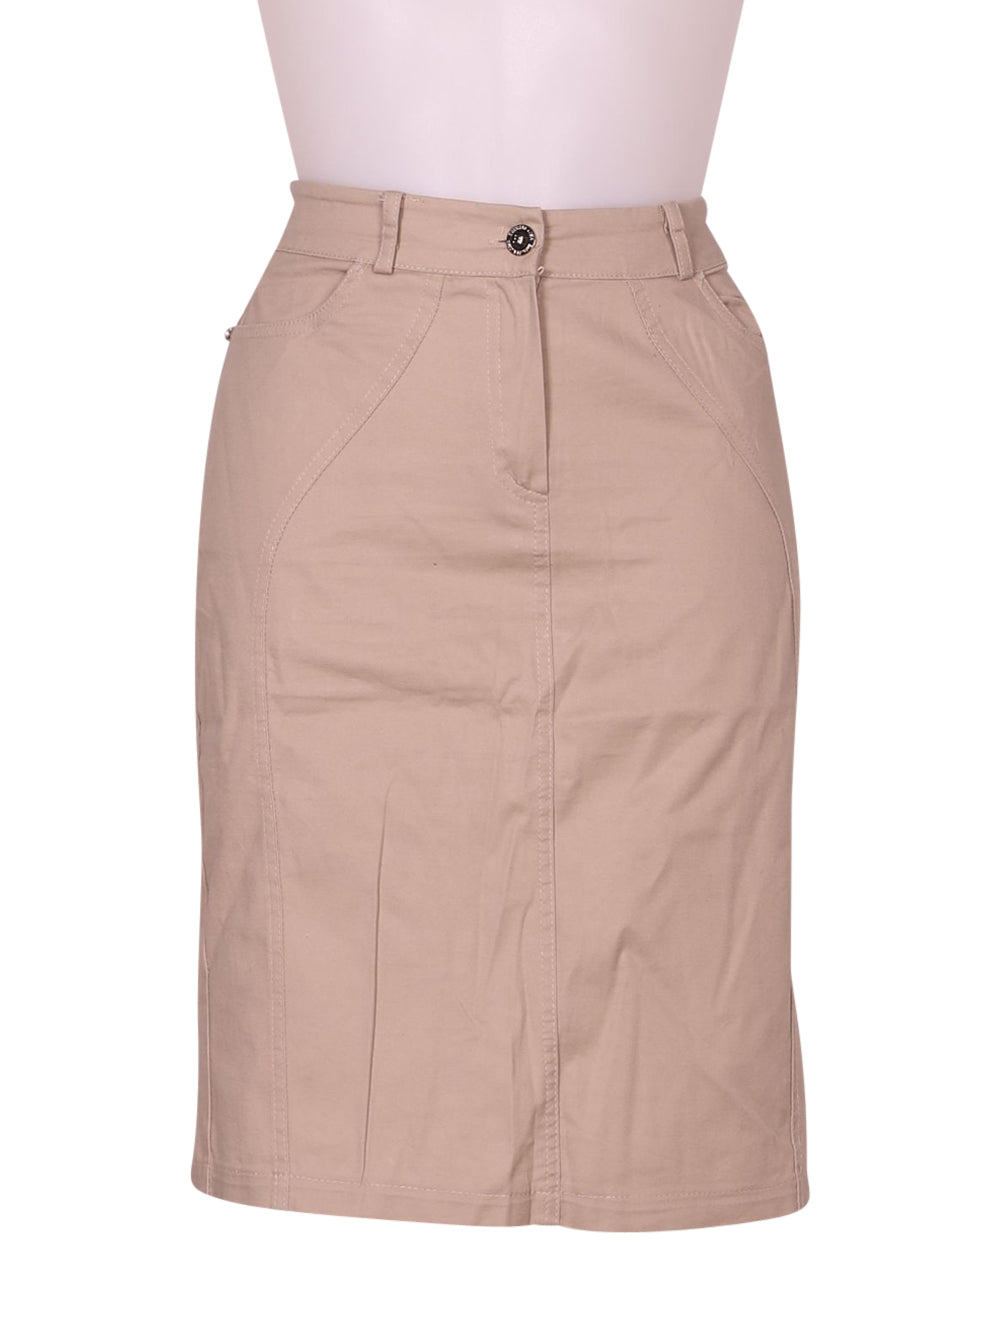 Front photo of Preloved Emanuela Costa Beige Woman's skirt - size 12/L